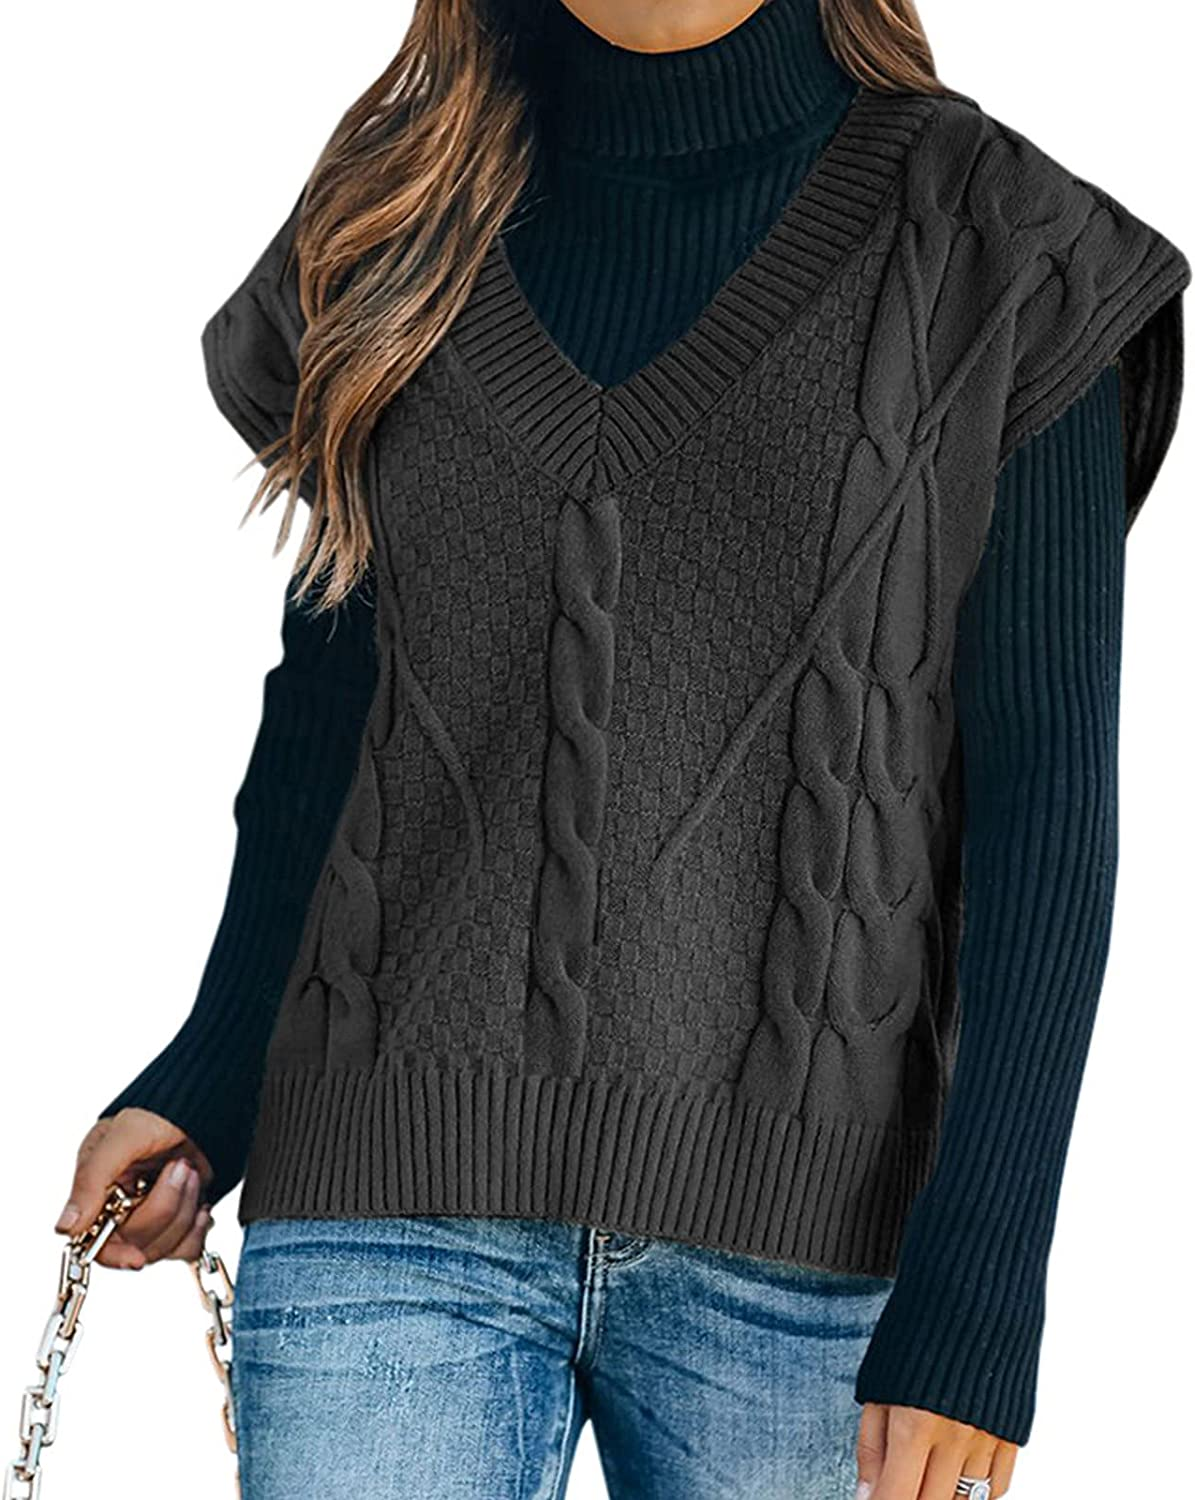 BOXIACEY Women's V-Neck Solid Tunic Tops Casual Loose Knitted Sweater Fashion Sleeveless Jacket Pullover